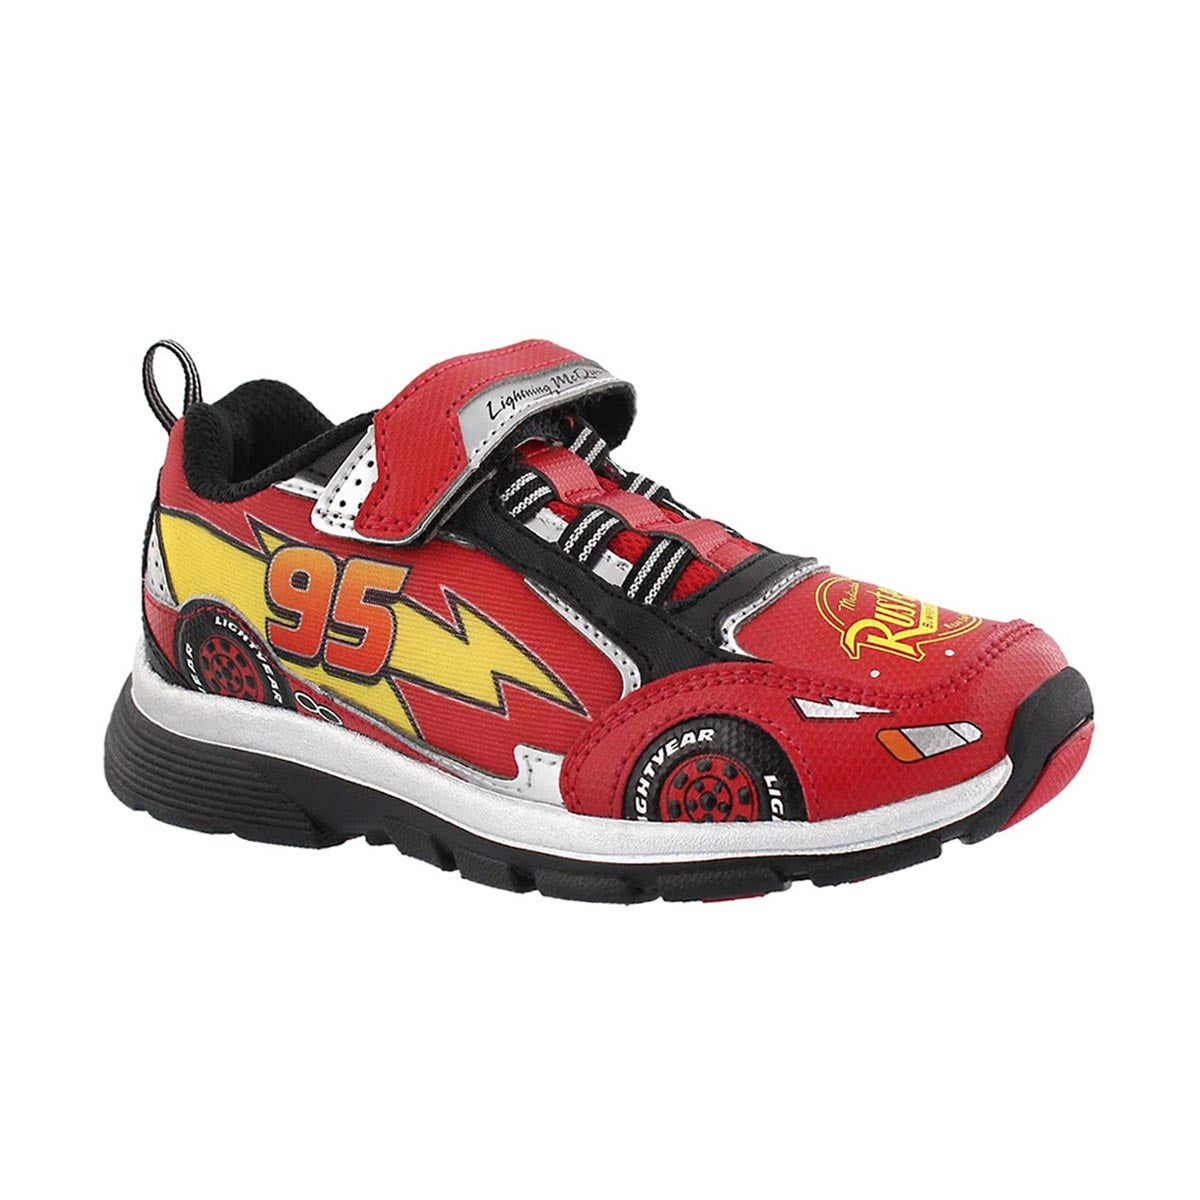 Boys' CARS LIGHTNING SPEED red light up sneakers